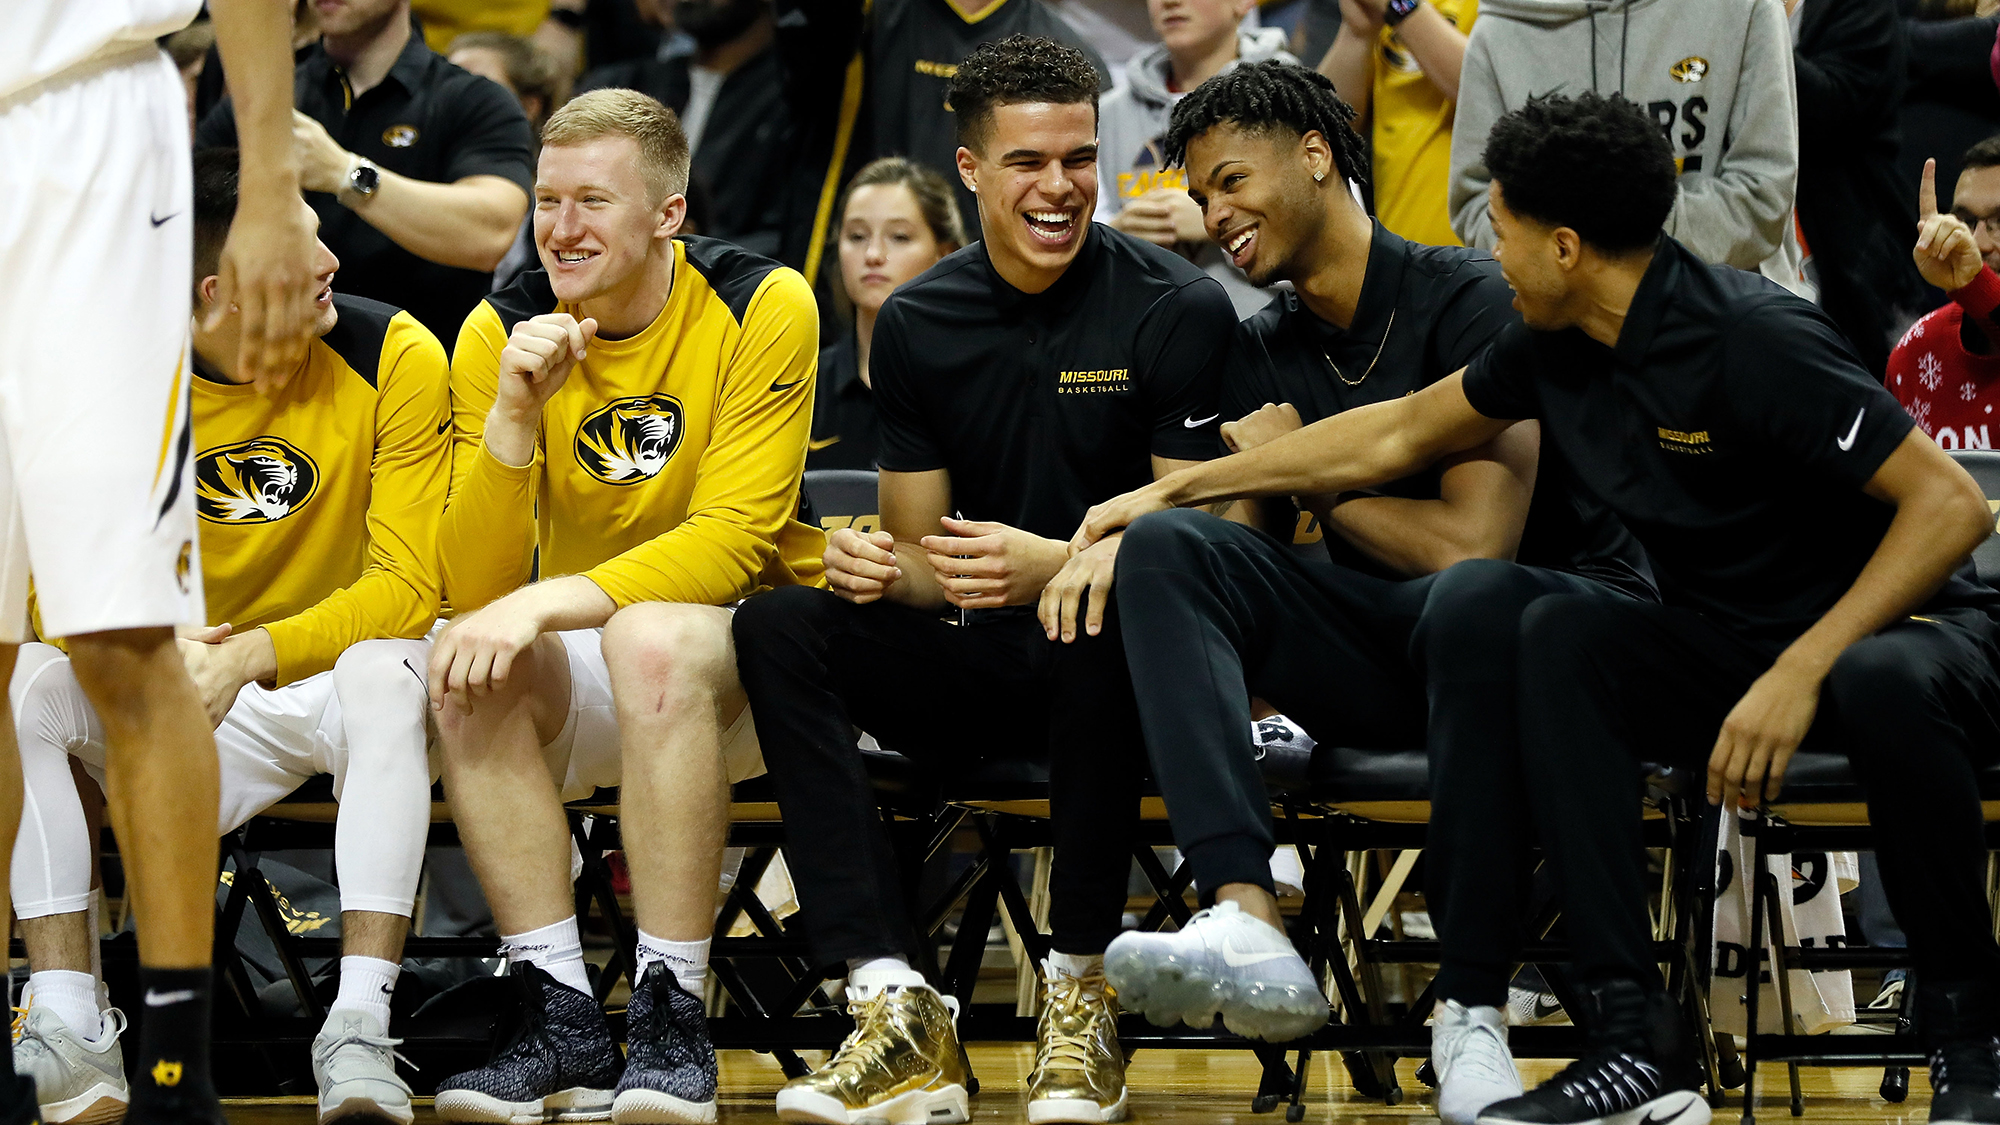 Report: Missouri Freshman Michael Porter Jr. Has Been Cleared For All Basketball Activities